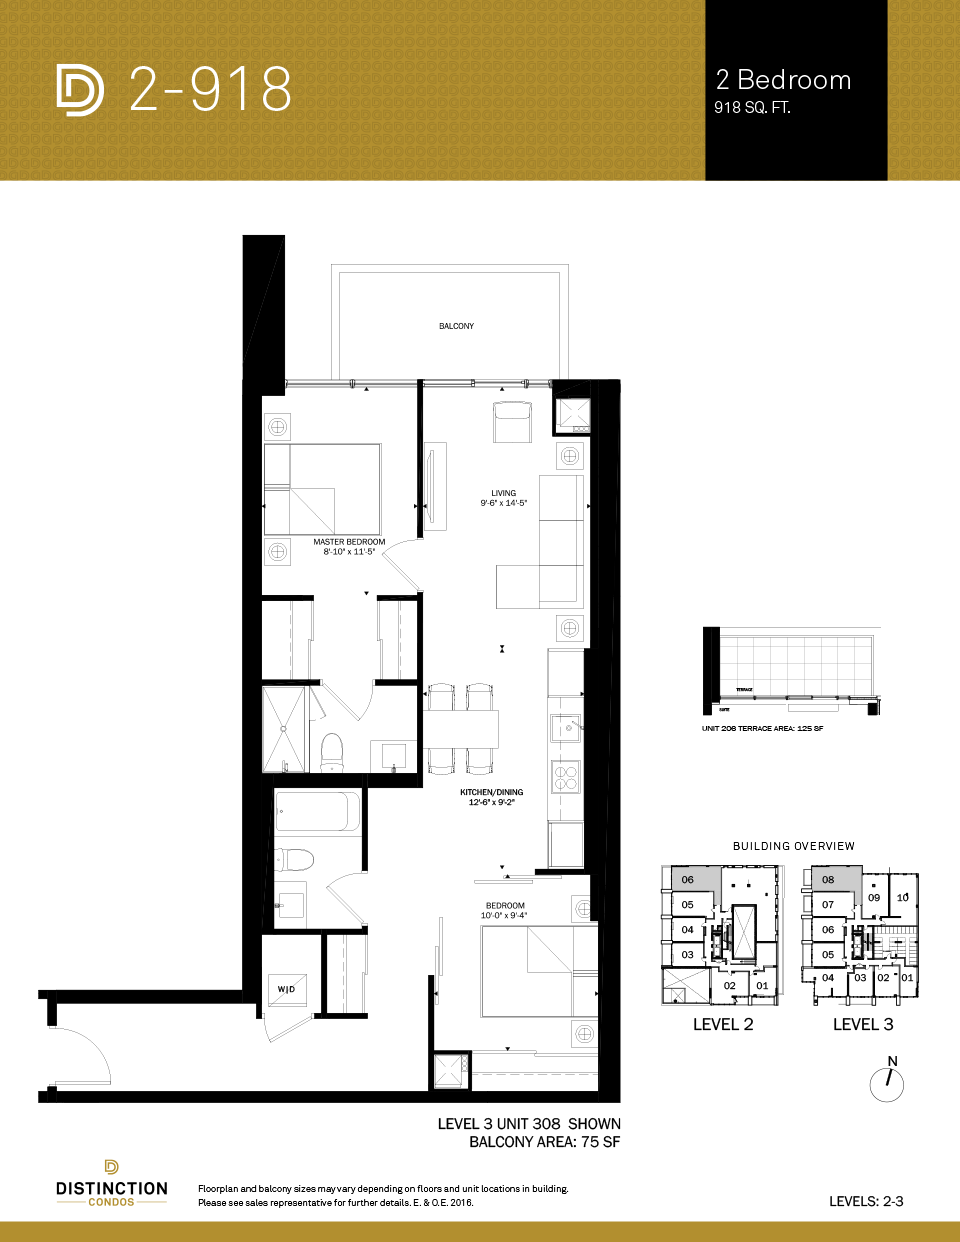 distinction condos floorplan 2-918